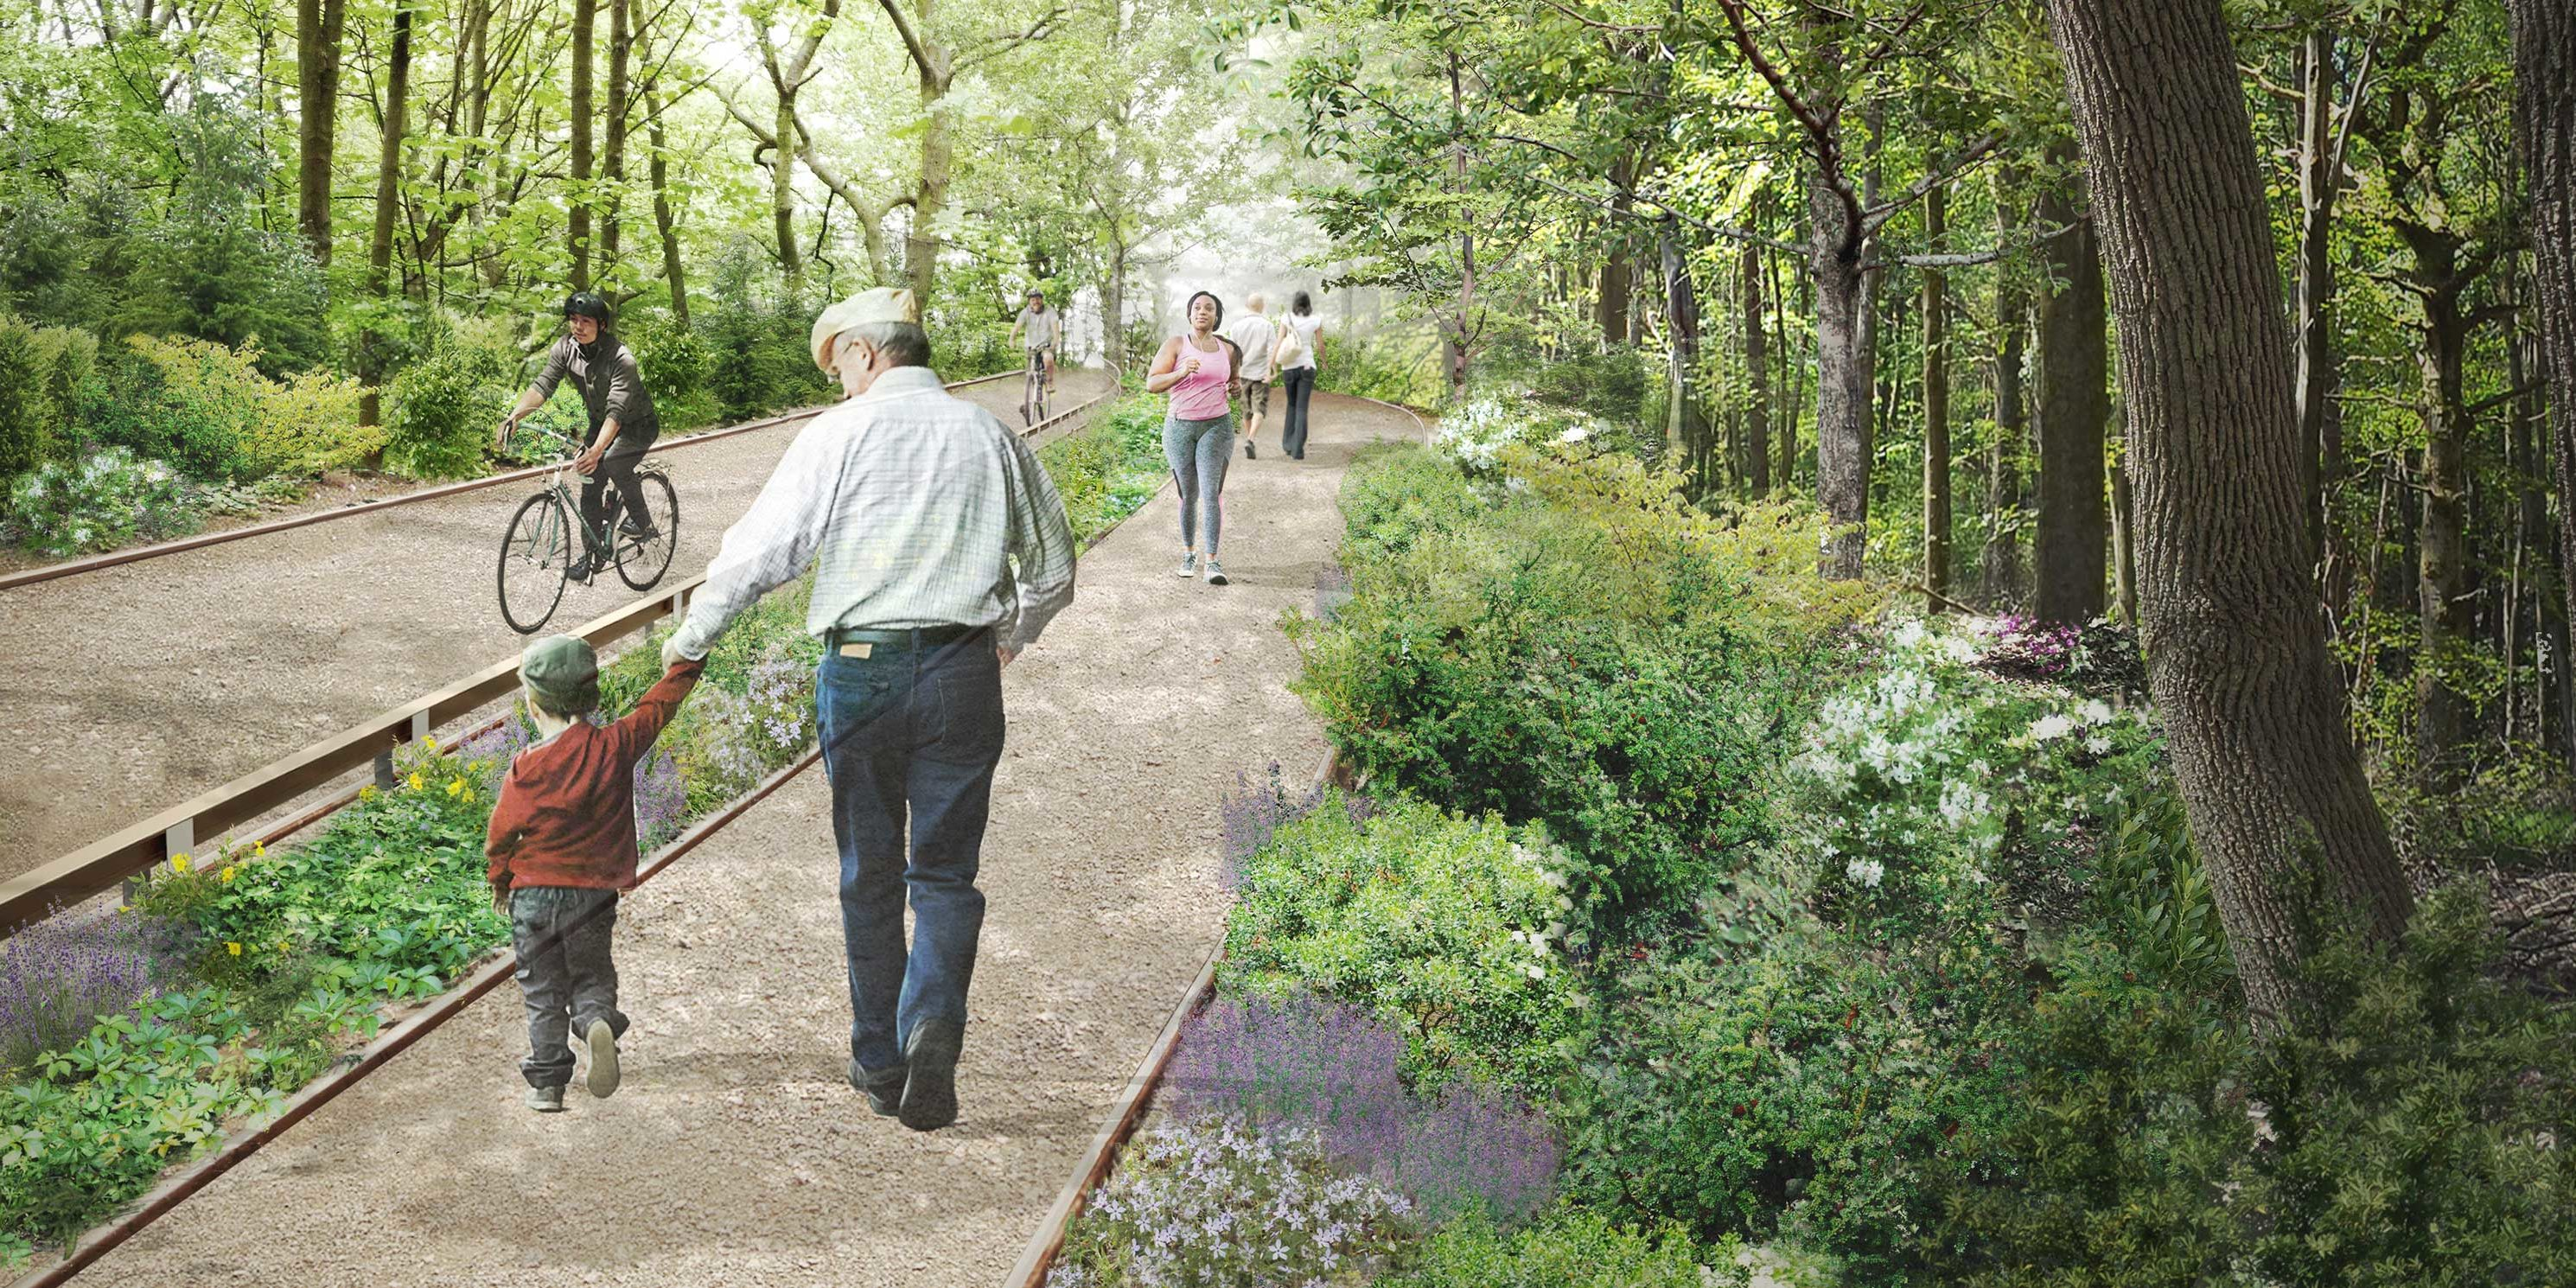 rendering of South Passage walking path